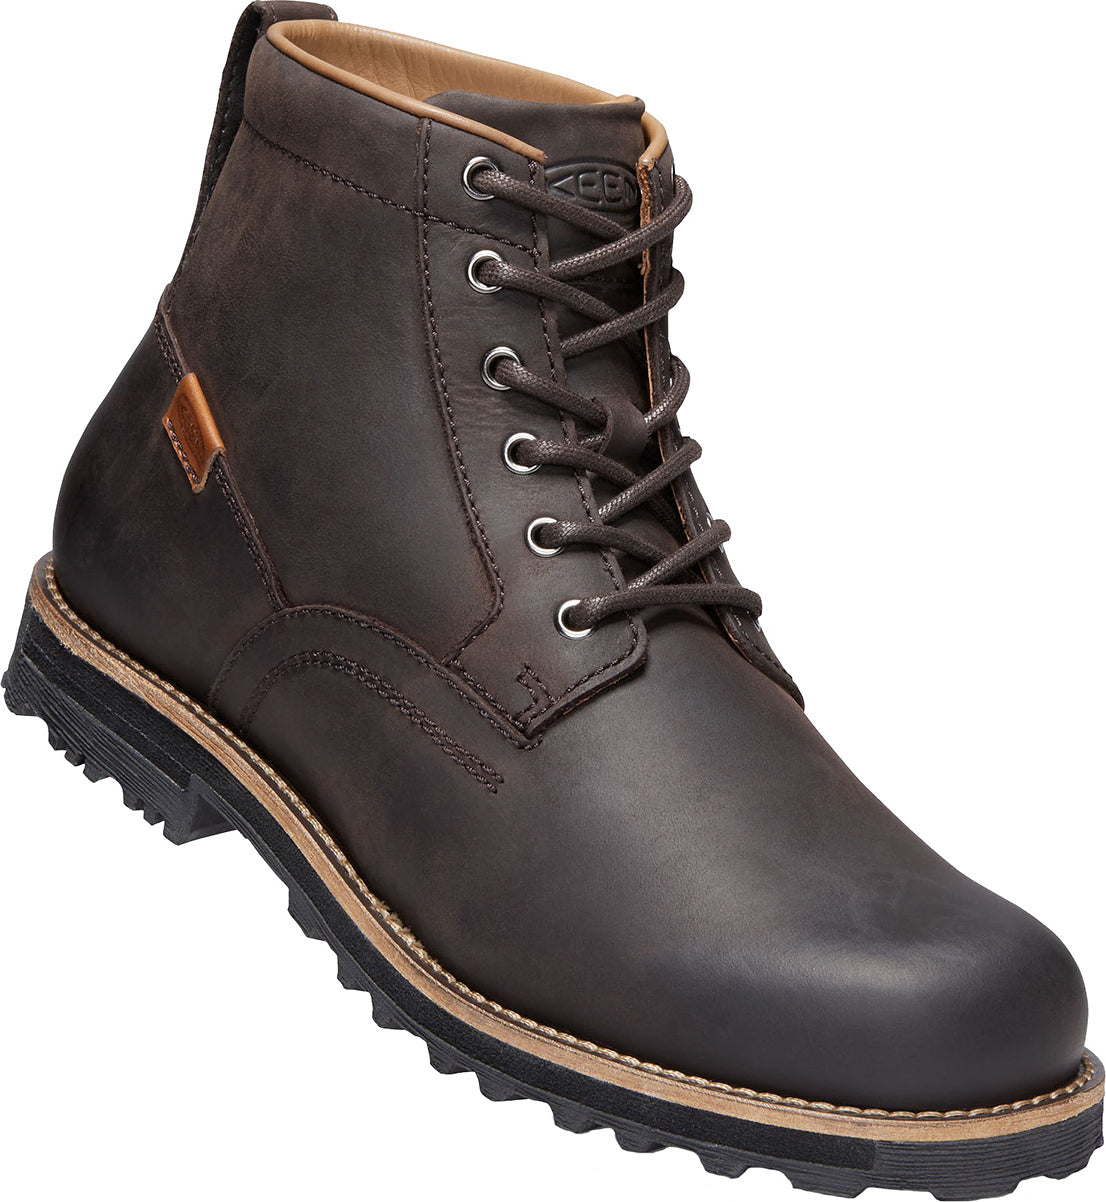 4062091ac4 Keen Men's The 59 Boot | Altitude Sports